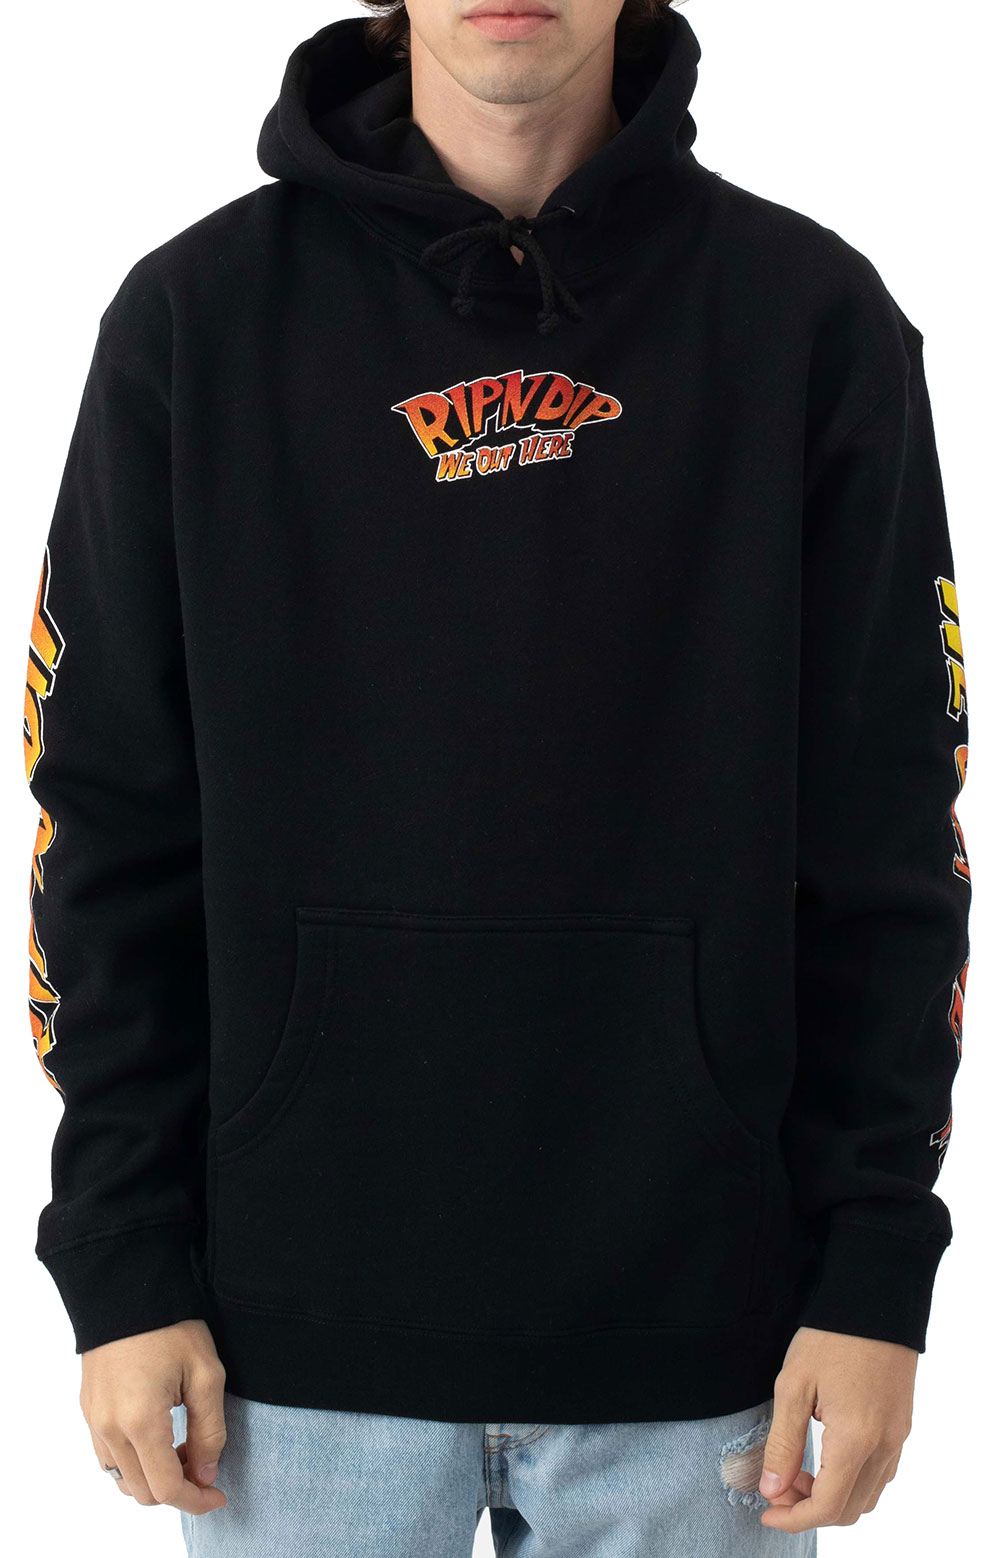 Out Of This World Pullover Hoodie - Black